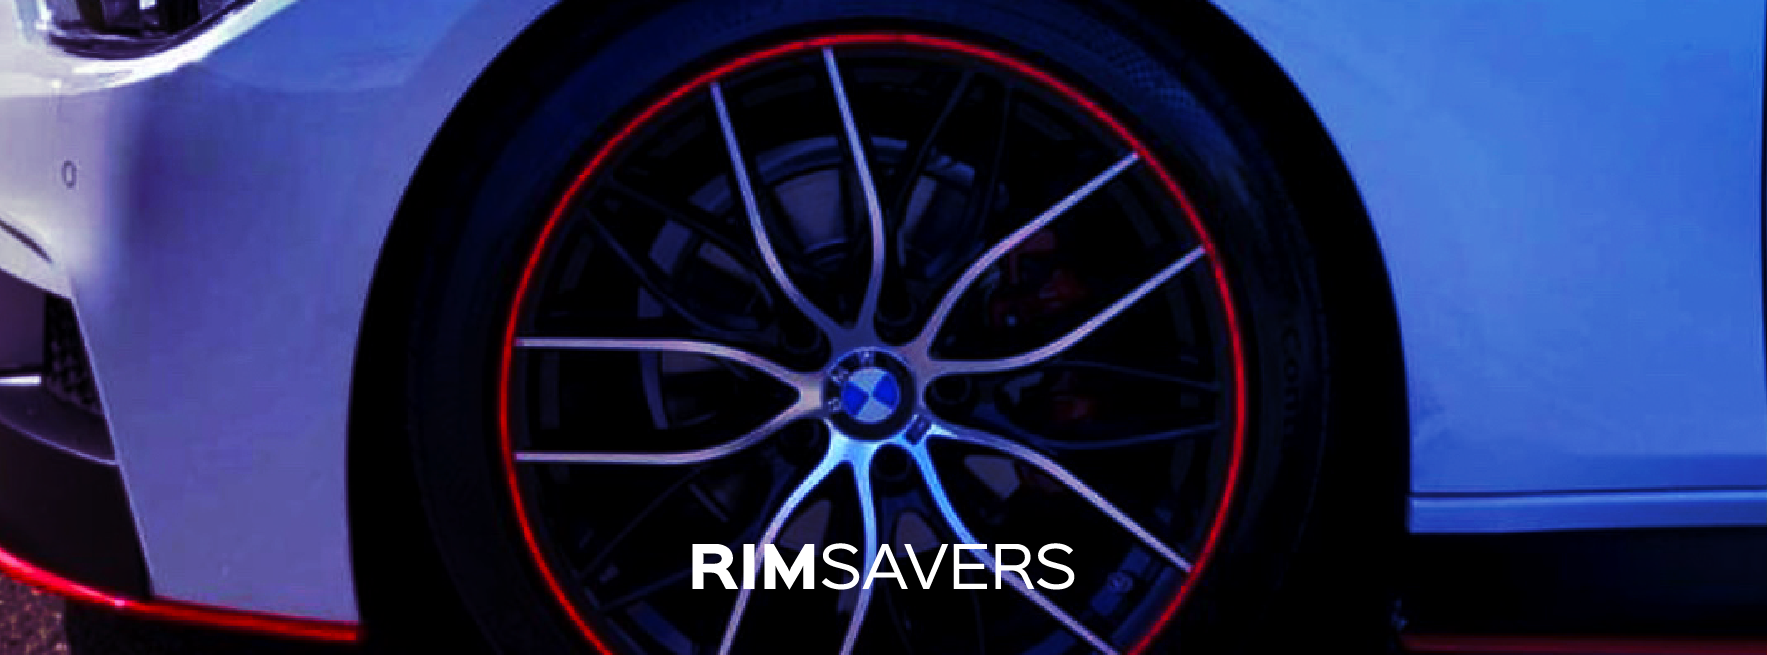 Rimsavers Alloy Wheel Rim Protectorrs on BMW